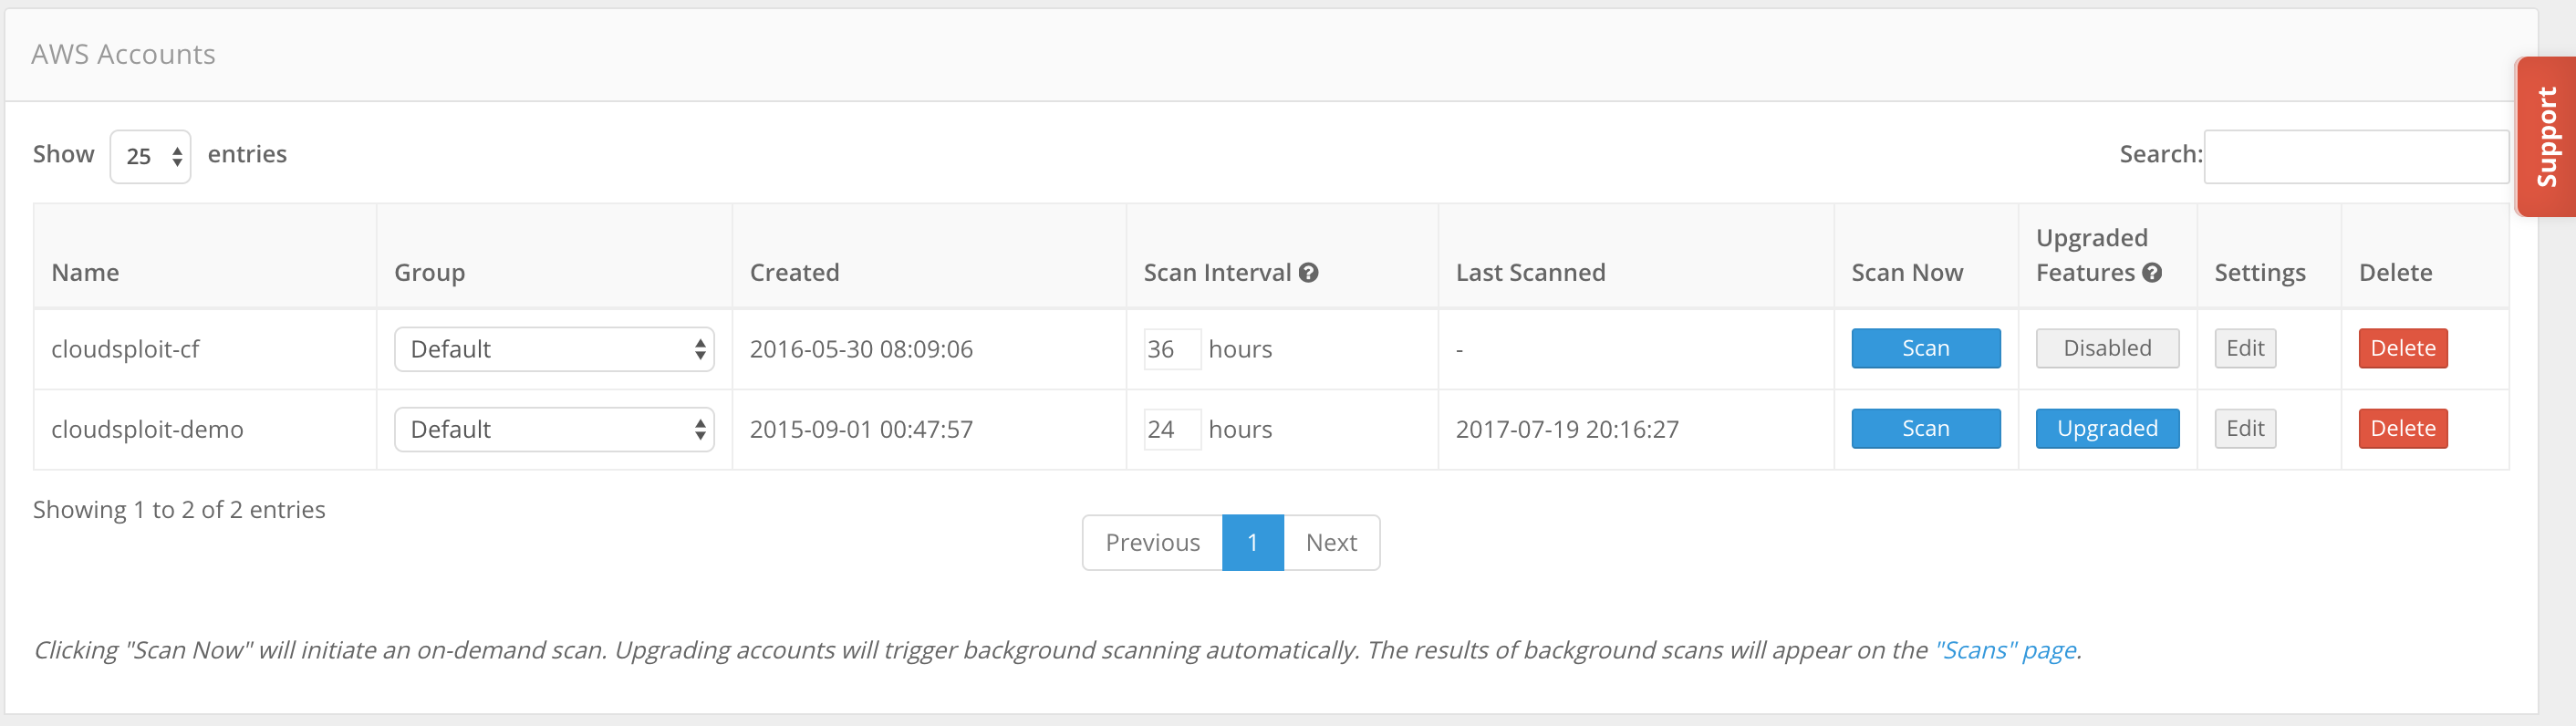 Introducing: S3 Security Visualizer - CloudSploit